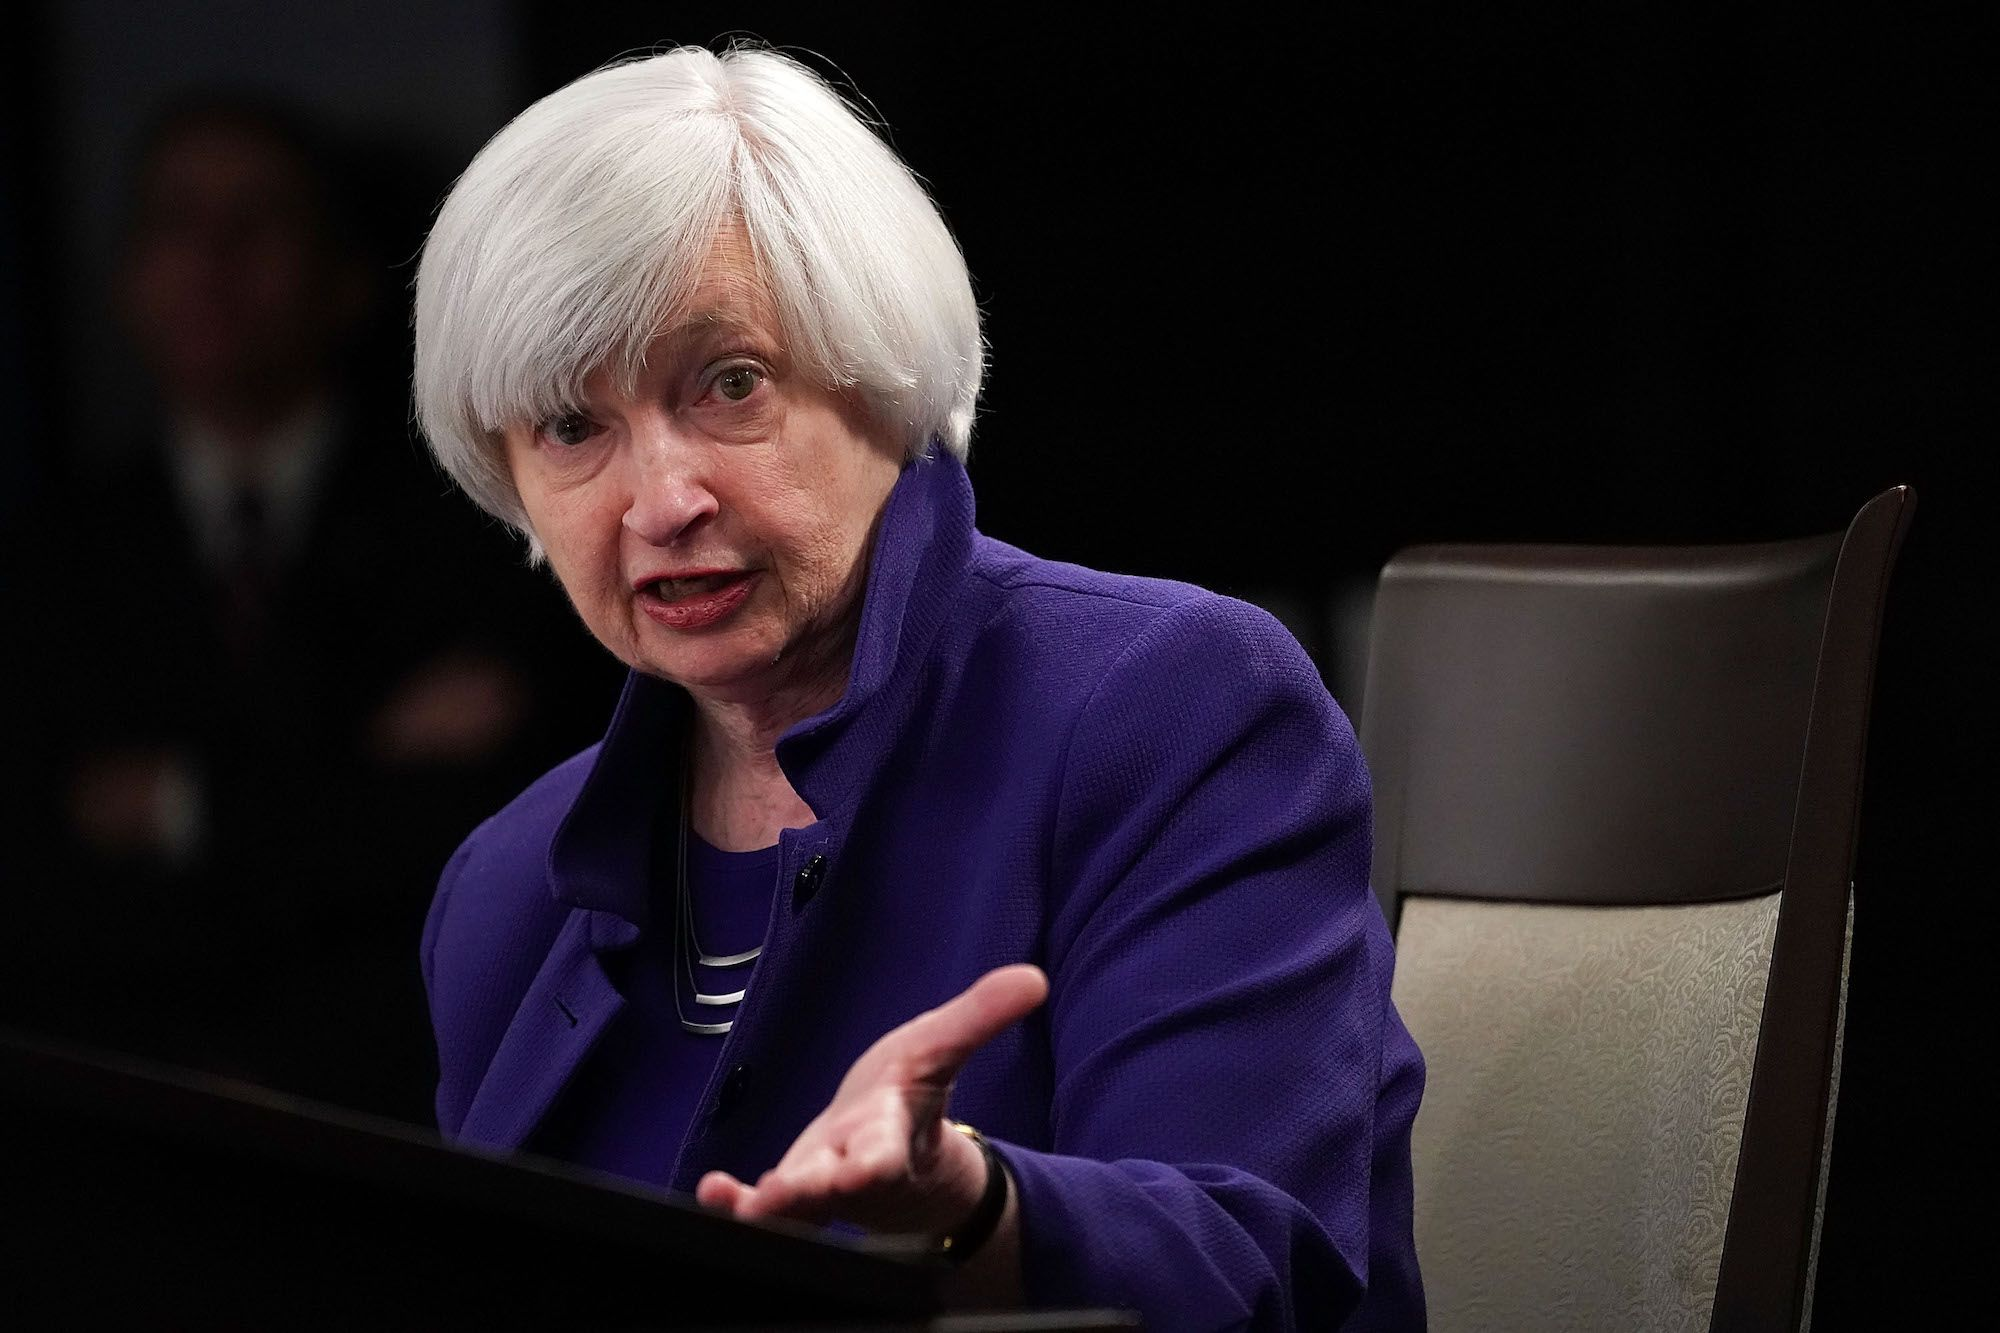 Janet Yellen Is Probably the Best Treasury Secretary We Could Expect from a Biden Presidency